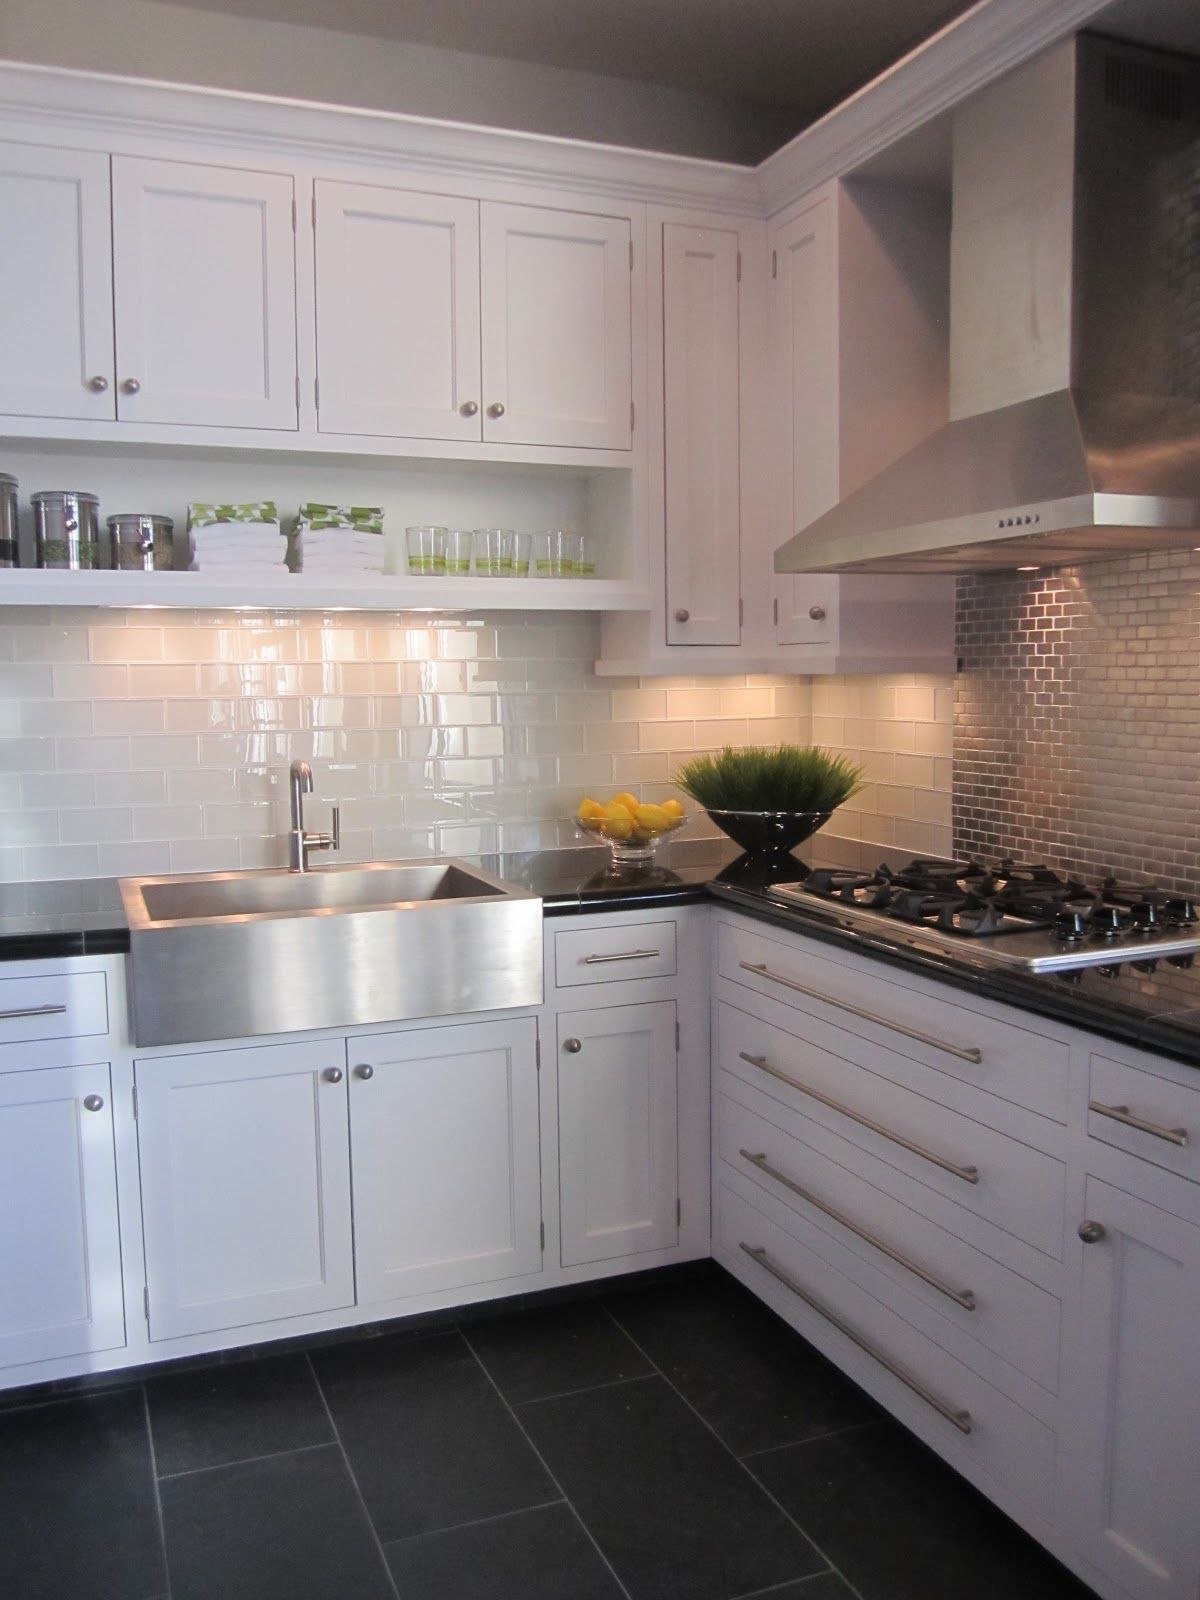 Image Result For Galley Kitchen White Cabinets Black